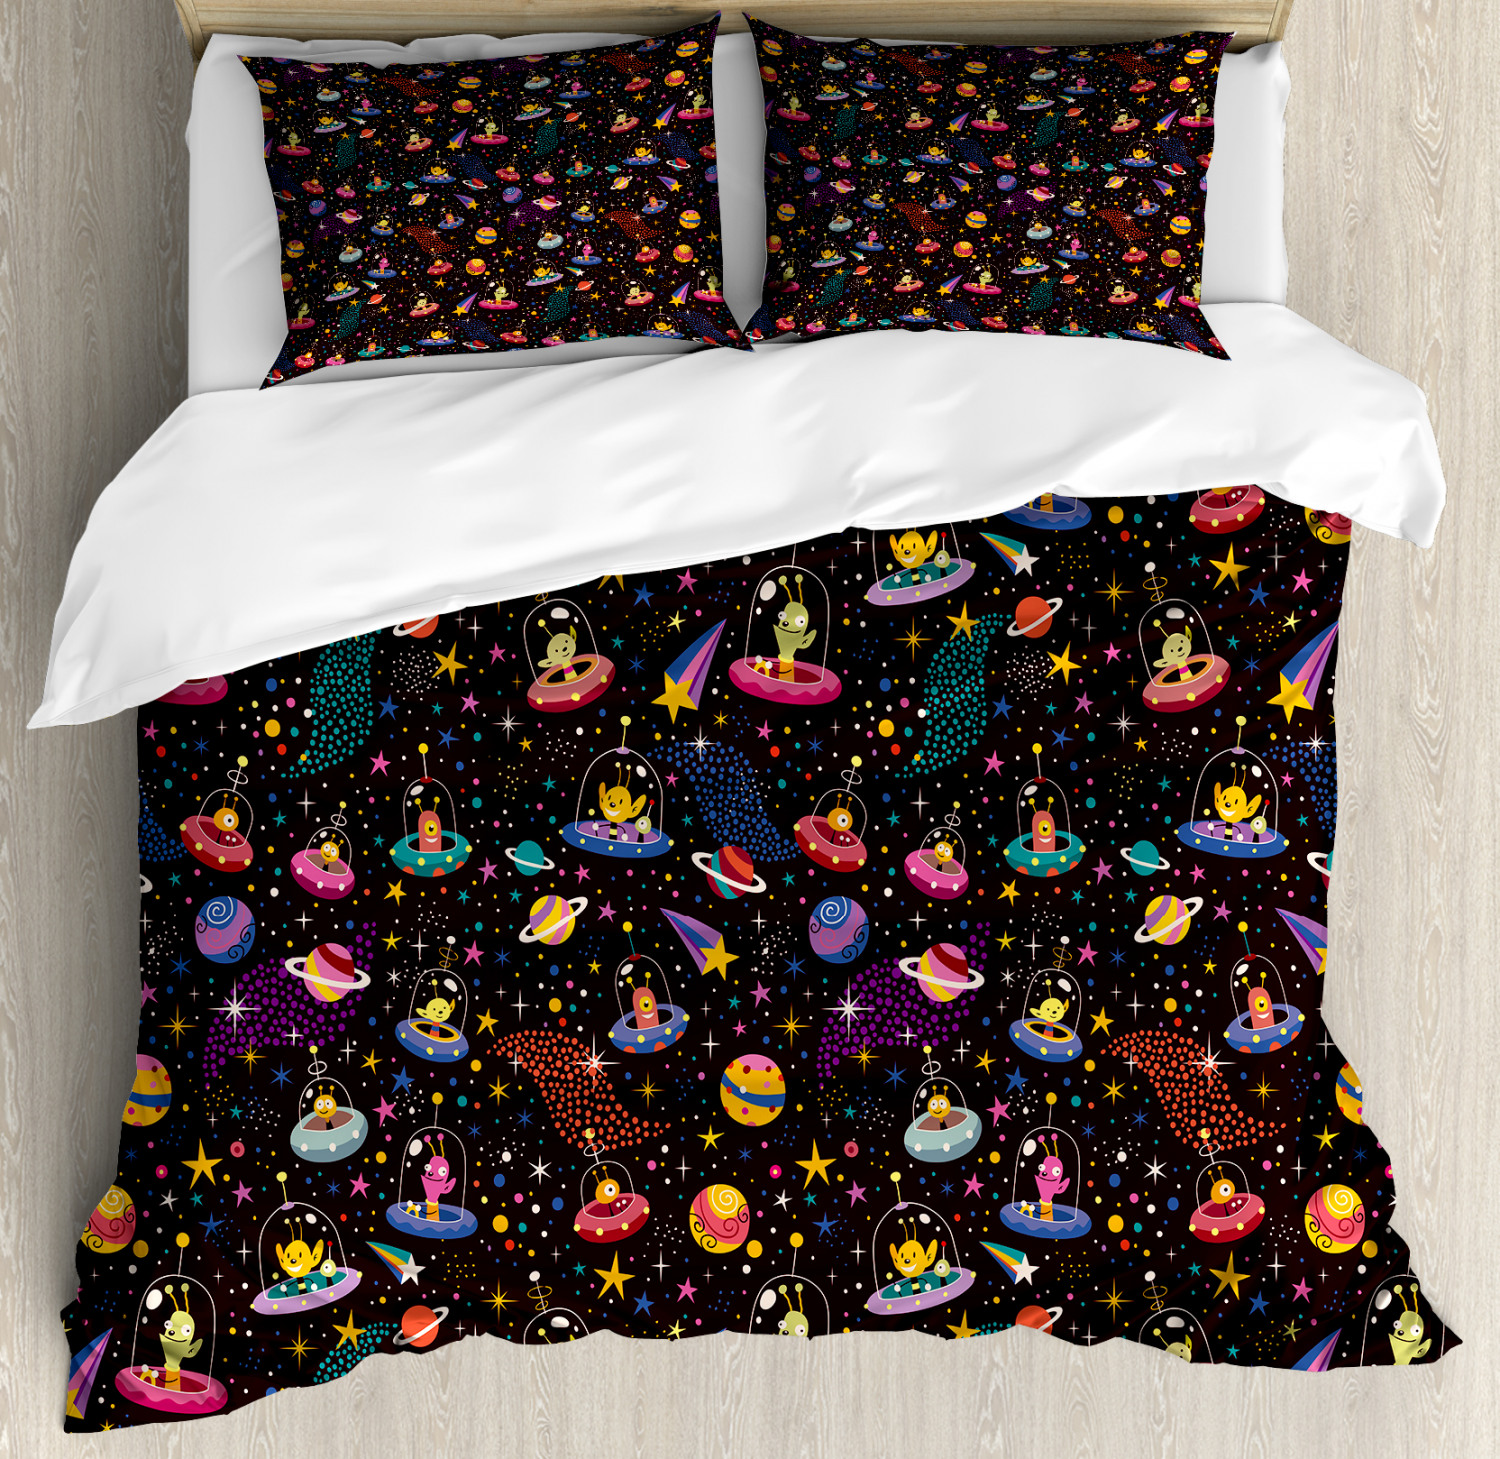 Space Duvet Cover Set with Pillow Shams Alien Planets and UFOs Print